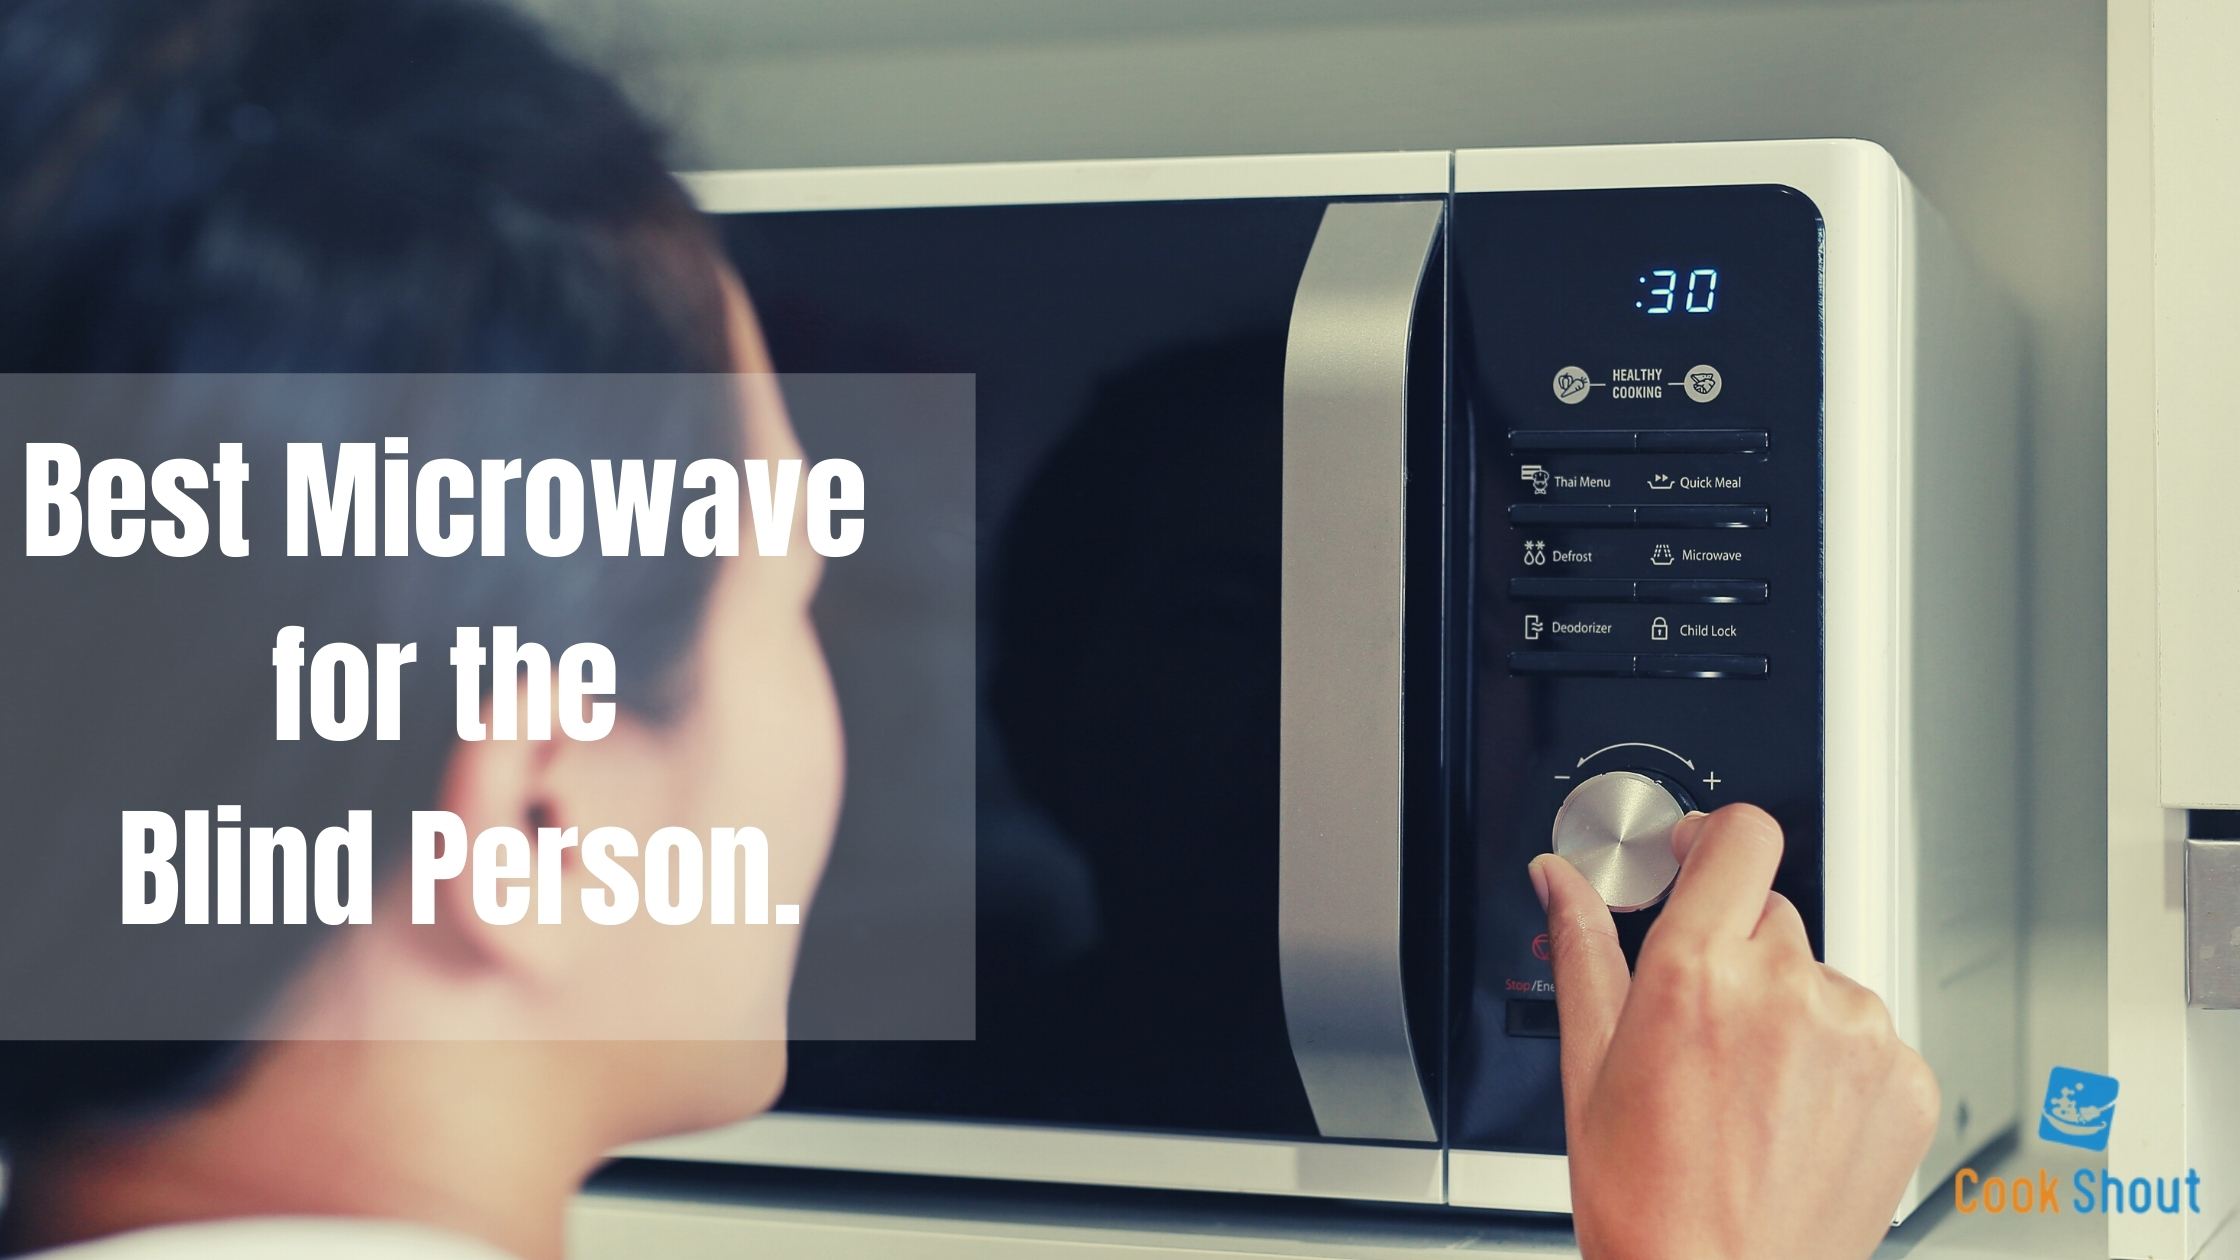 Best Microwave for the Blind Person